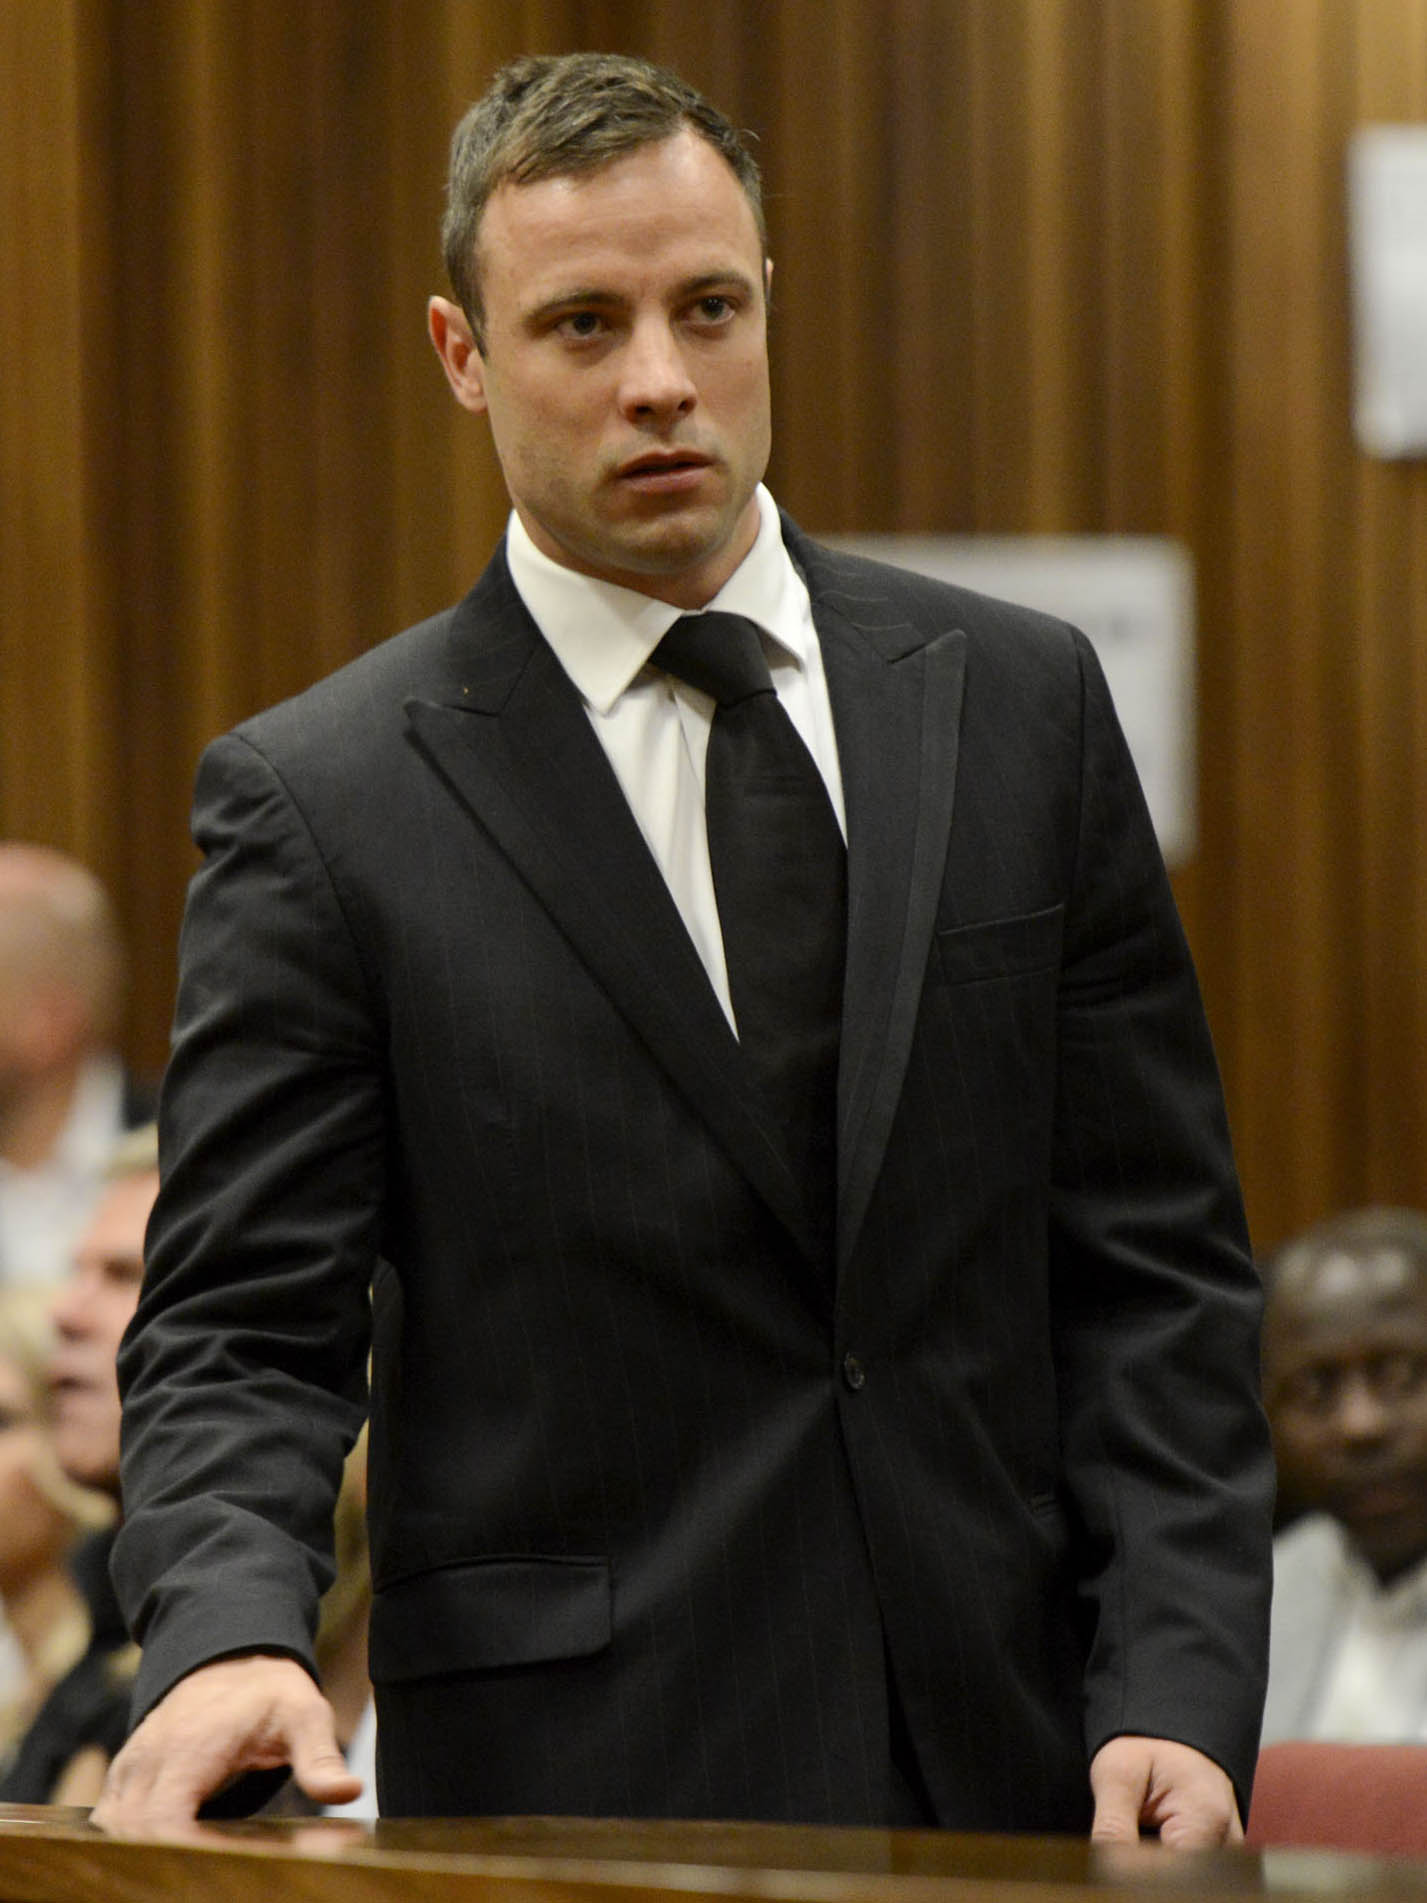 Oscar Pistorius Charged MURDER Model Girlfriend Reeva Steenk together with Court Finds Oscar Pistorius Guilty Murdering Reeva Steenk further La Fg Wn Obama Robben Island Mandela Prison 20130630 additionally Japan Executes Death Row Prisoners likewise Oscar Pistorius Hellhole Prison. on oscar pistorius and south africa prison